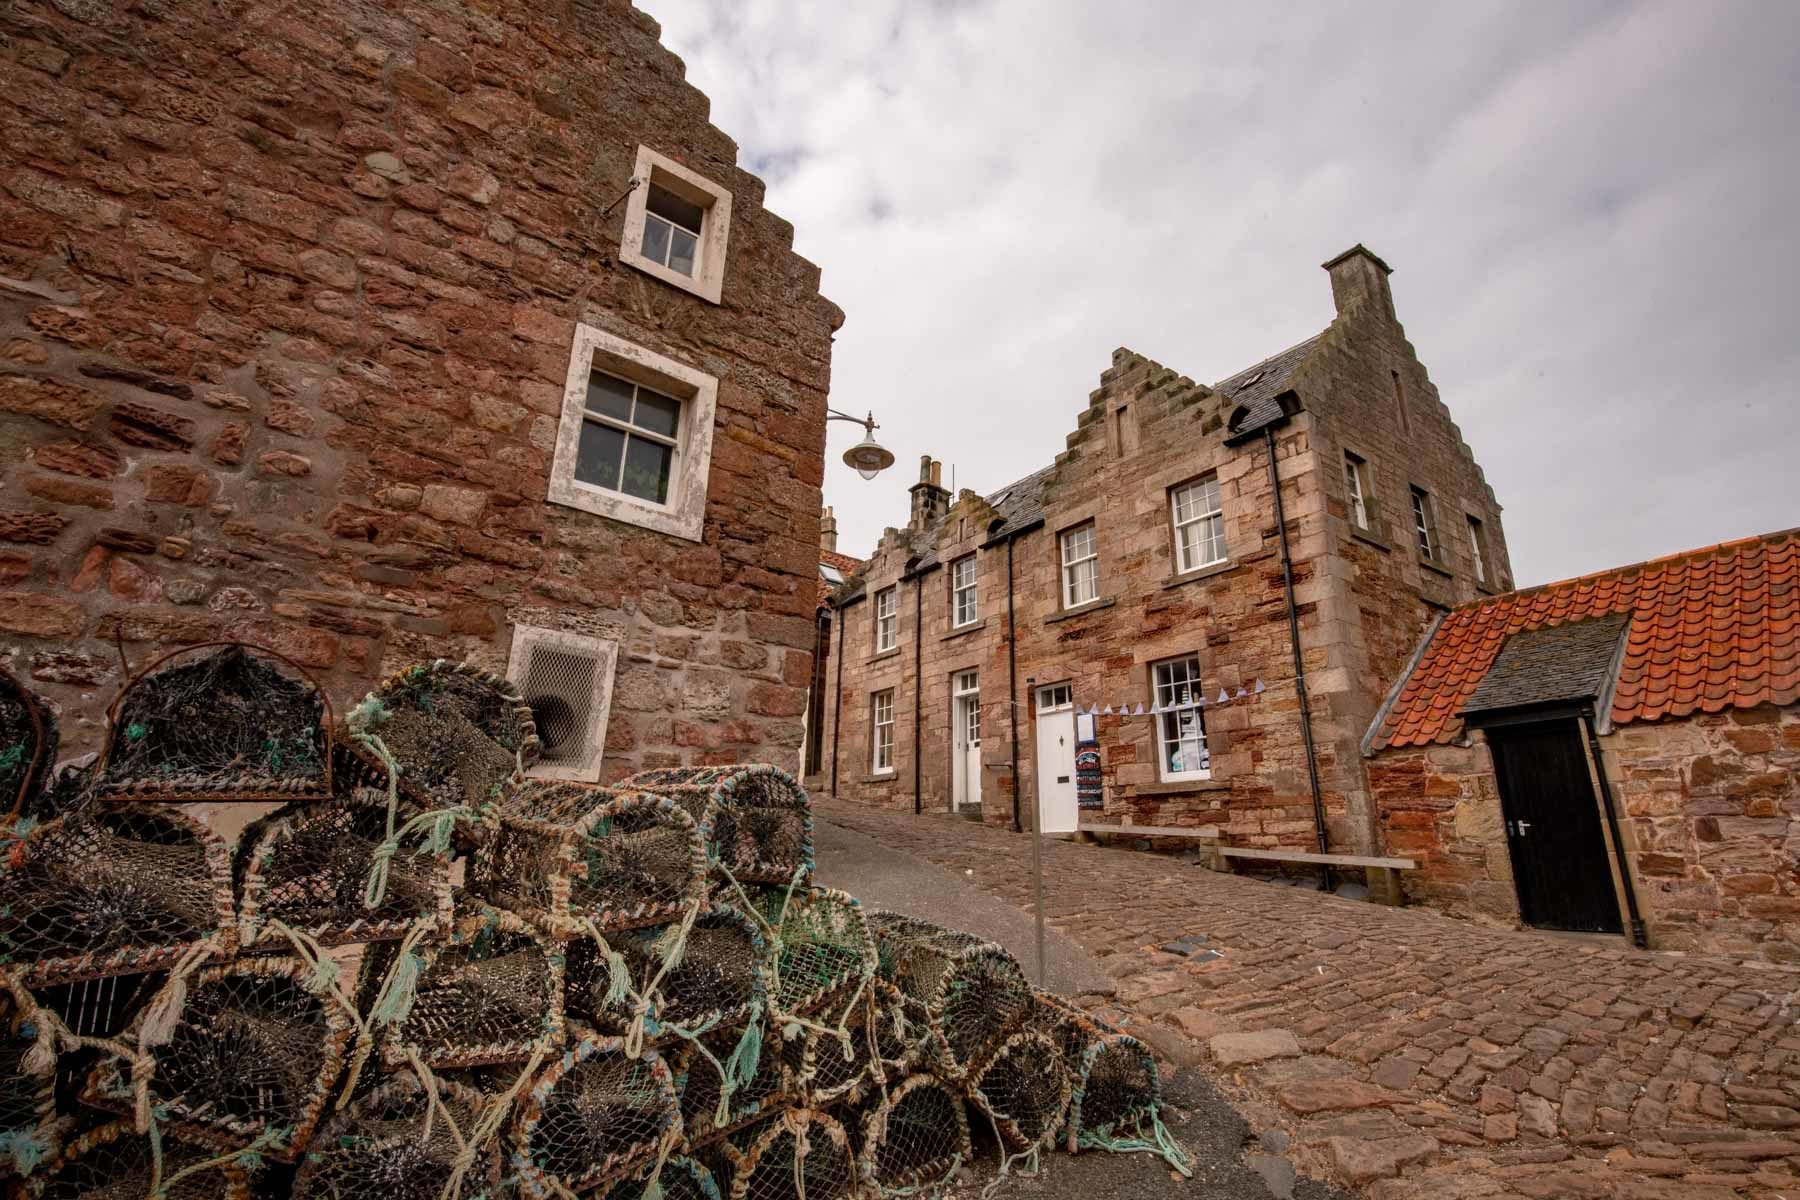 a-lobster-on-the-port-of-crail-sir-edwards-roadtrip